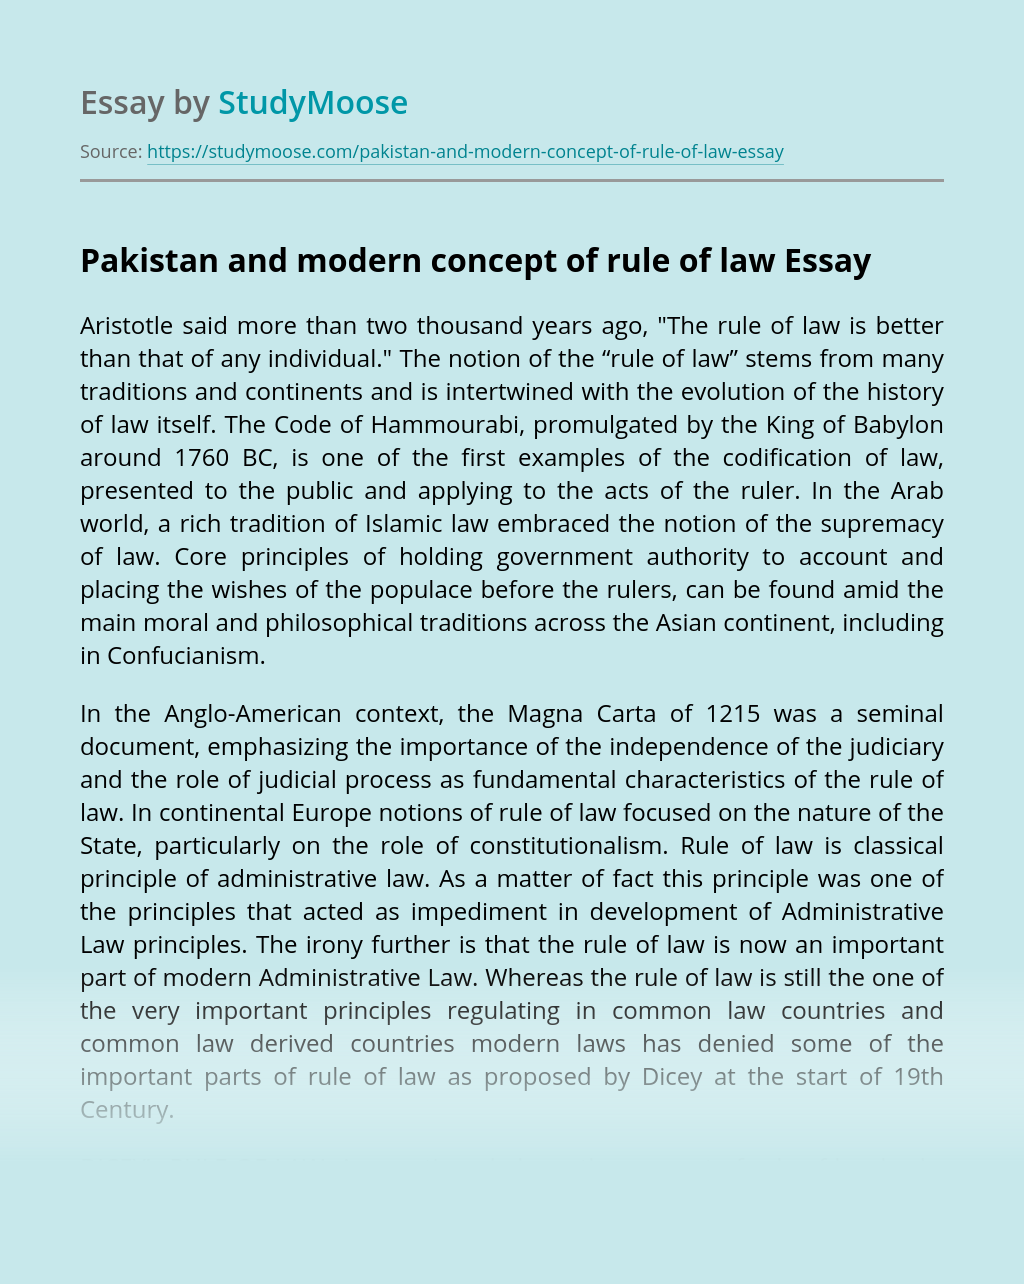 Pakistan and modern concept of rule of law